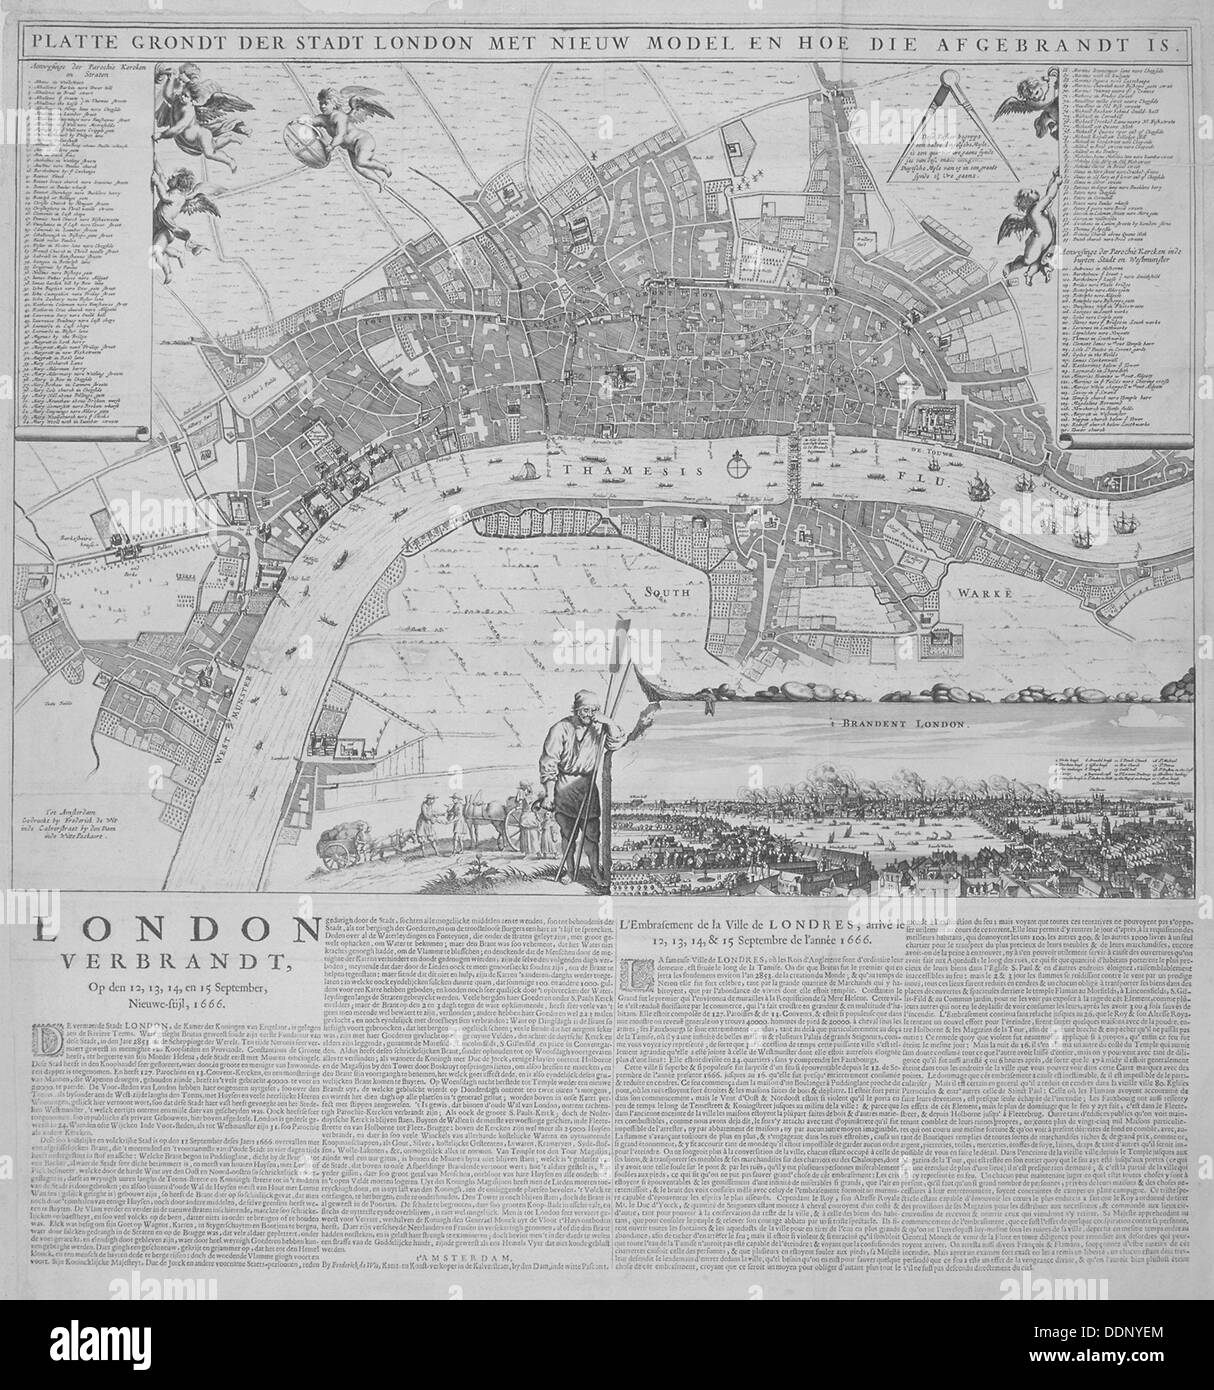 Map of London, 1666.   Artist: Anon - Stock Image